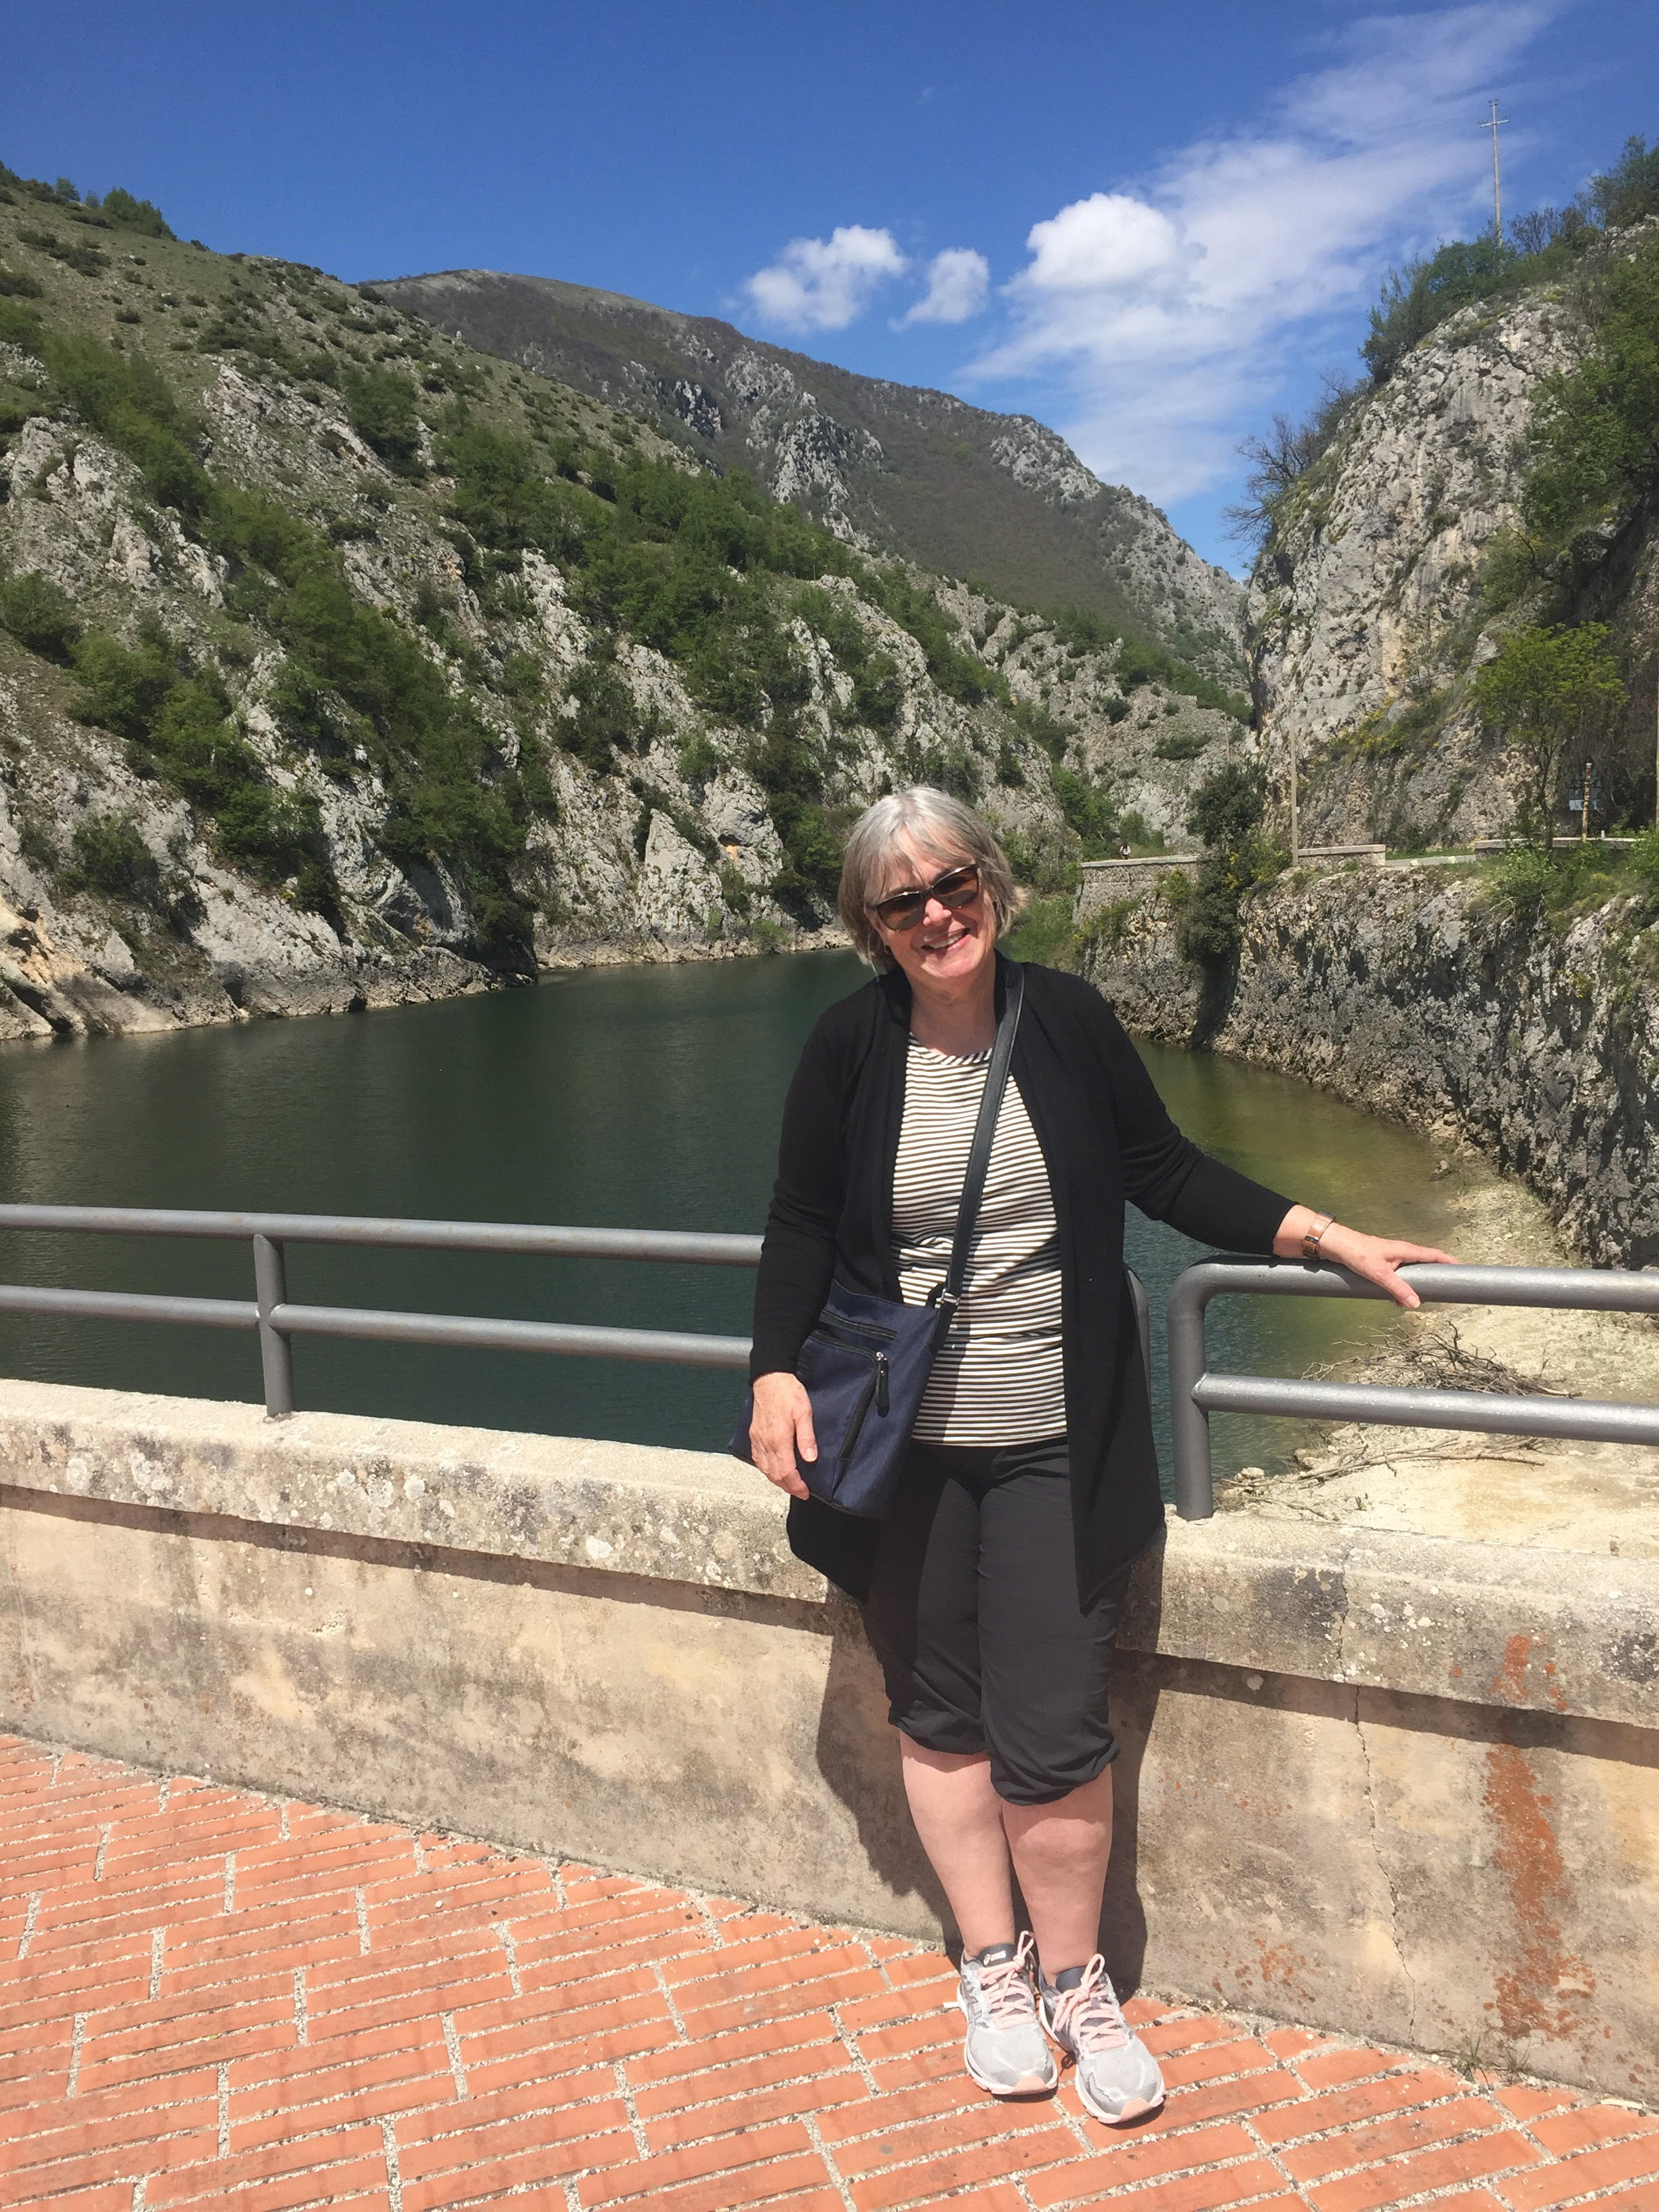 Diane and I would like to thank Jake, Lisa, and the team for making our visit to Abruzzo so amazing! Every single one of you did your best to feed us, take us on fascinating tours, and make us feel comfortable and welcome. I love Abruzzo and can't wait to visit again! Thank you. Stephanie Watson